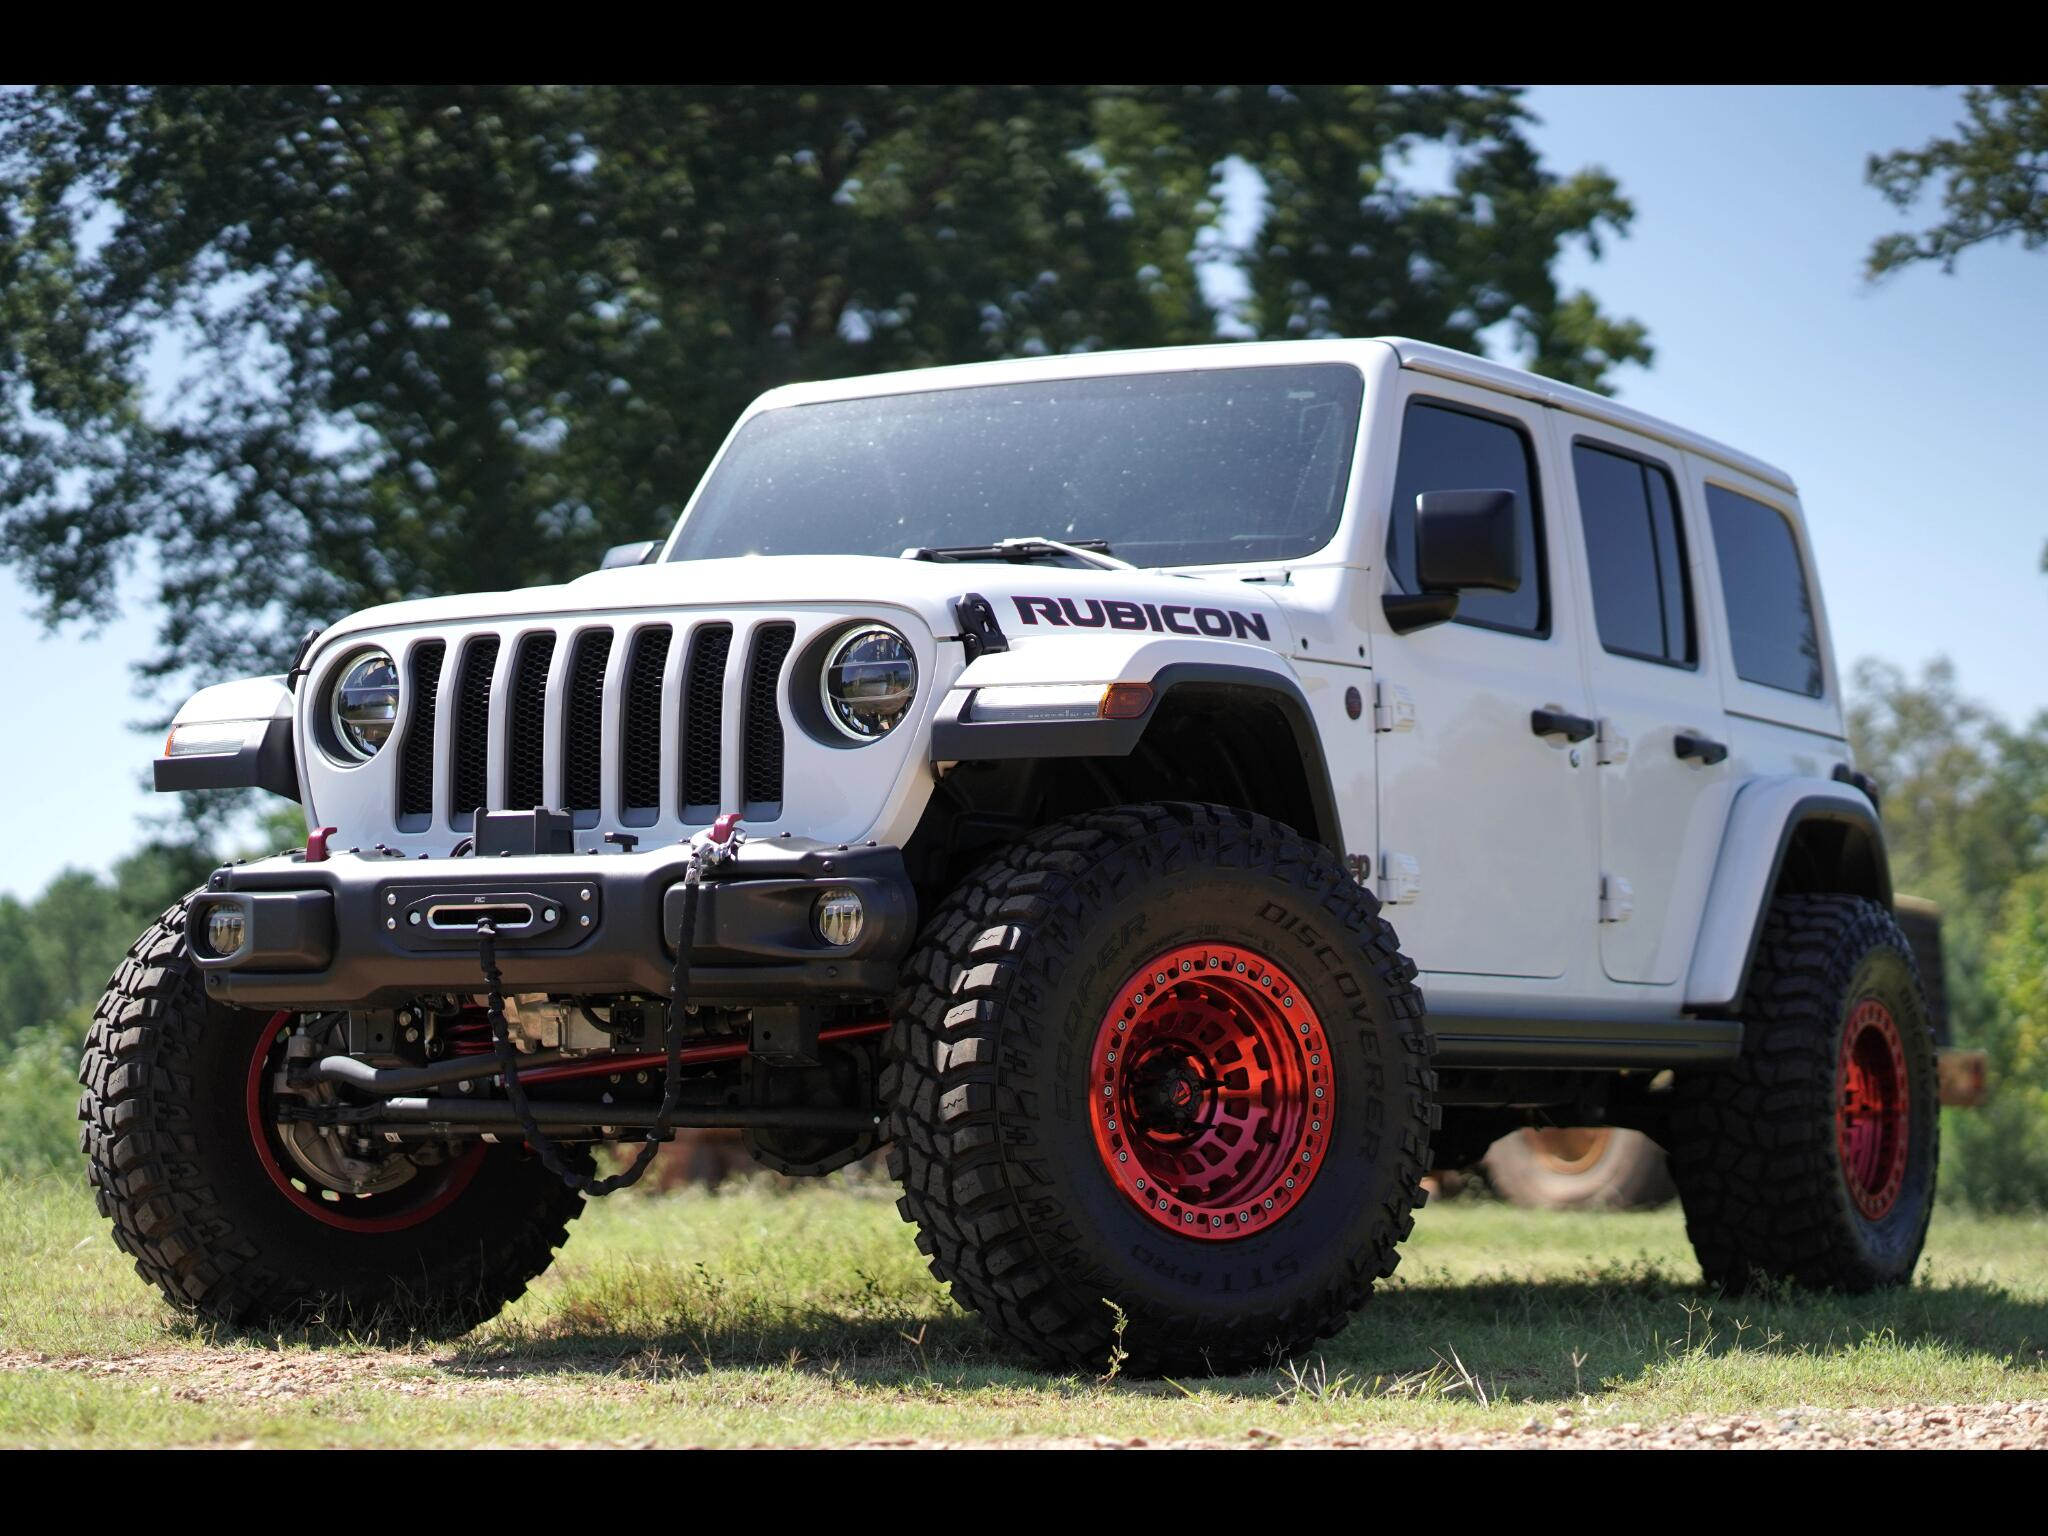 2018 Jeep Wrangler Unlimited RUBICON 4WD Unlimited Loaded Beadlocks RockKrawler